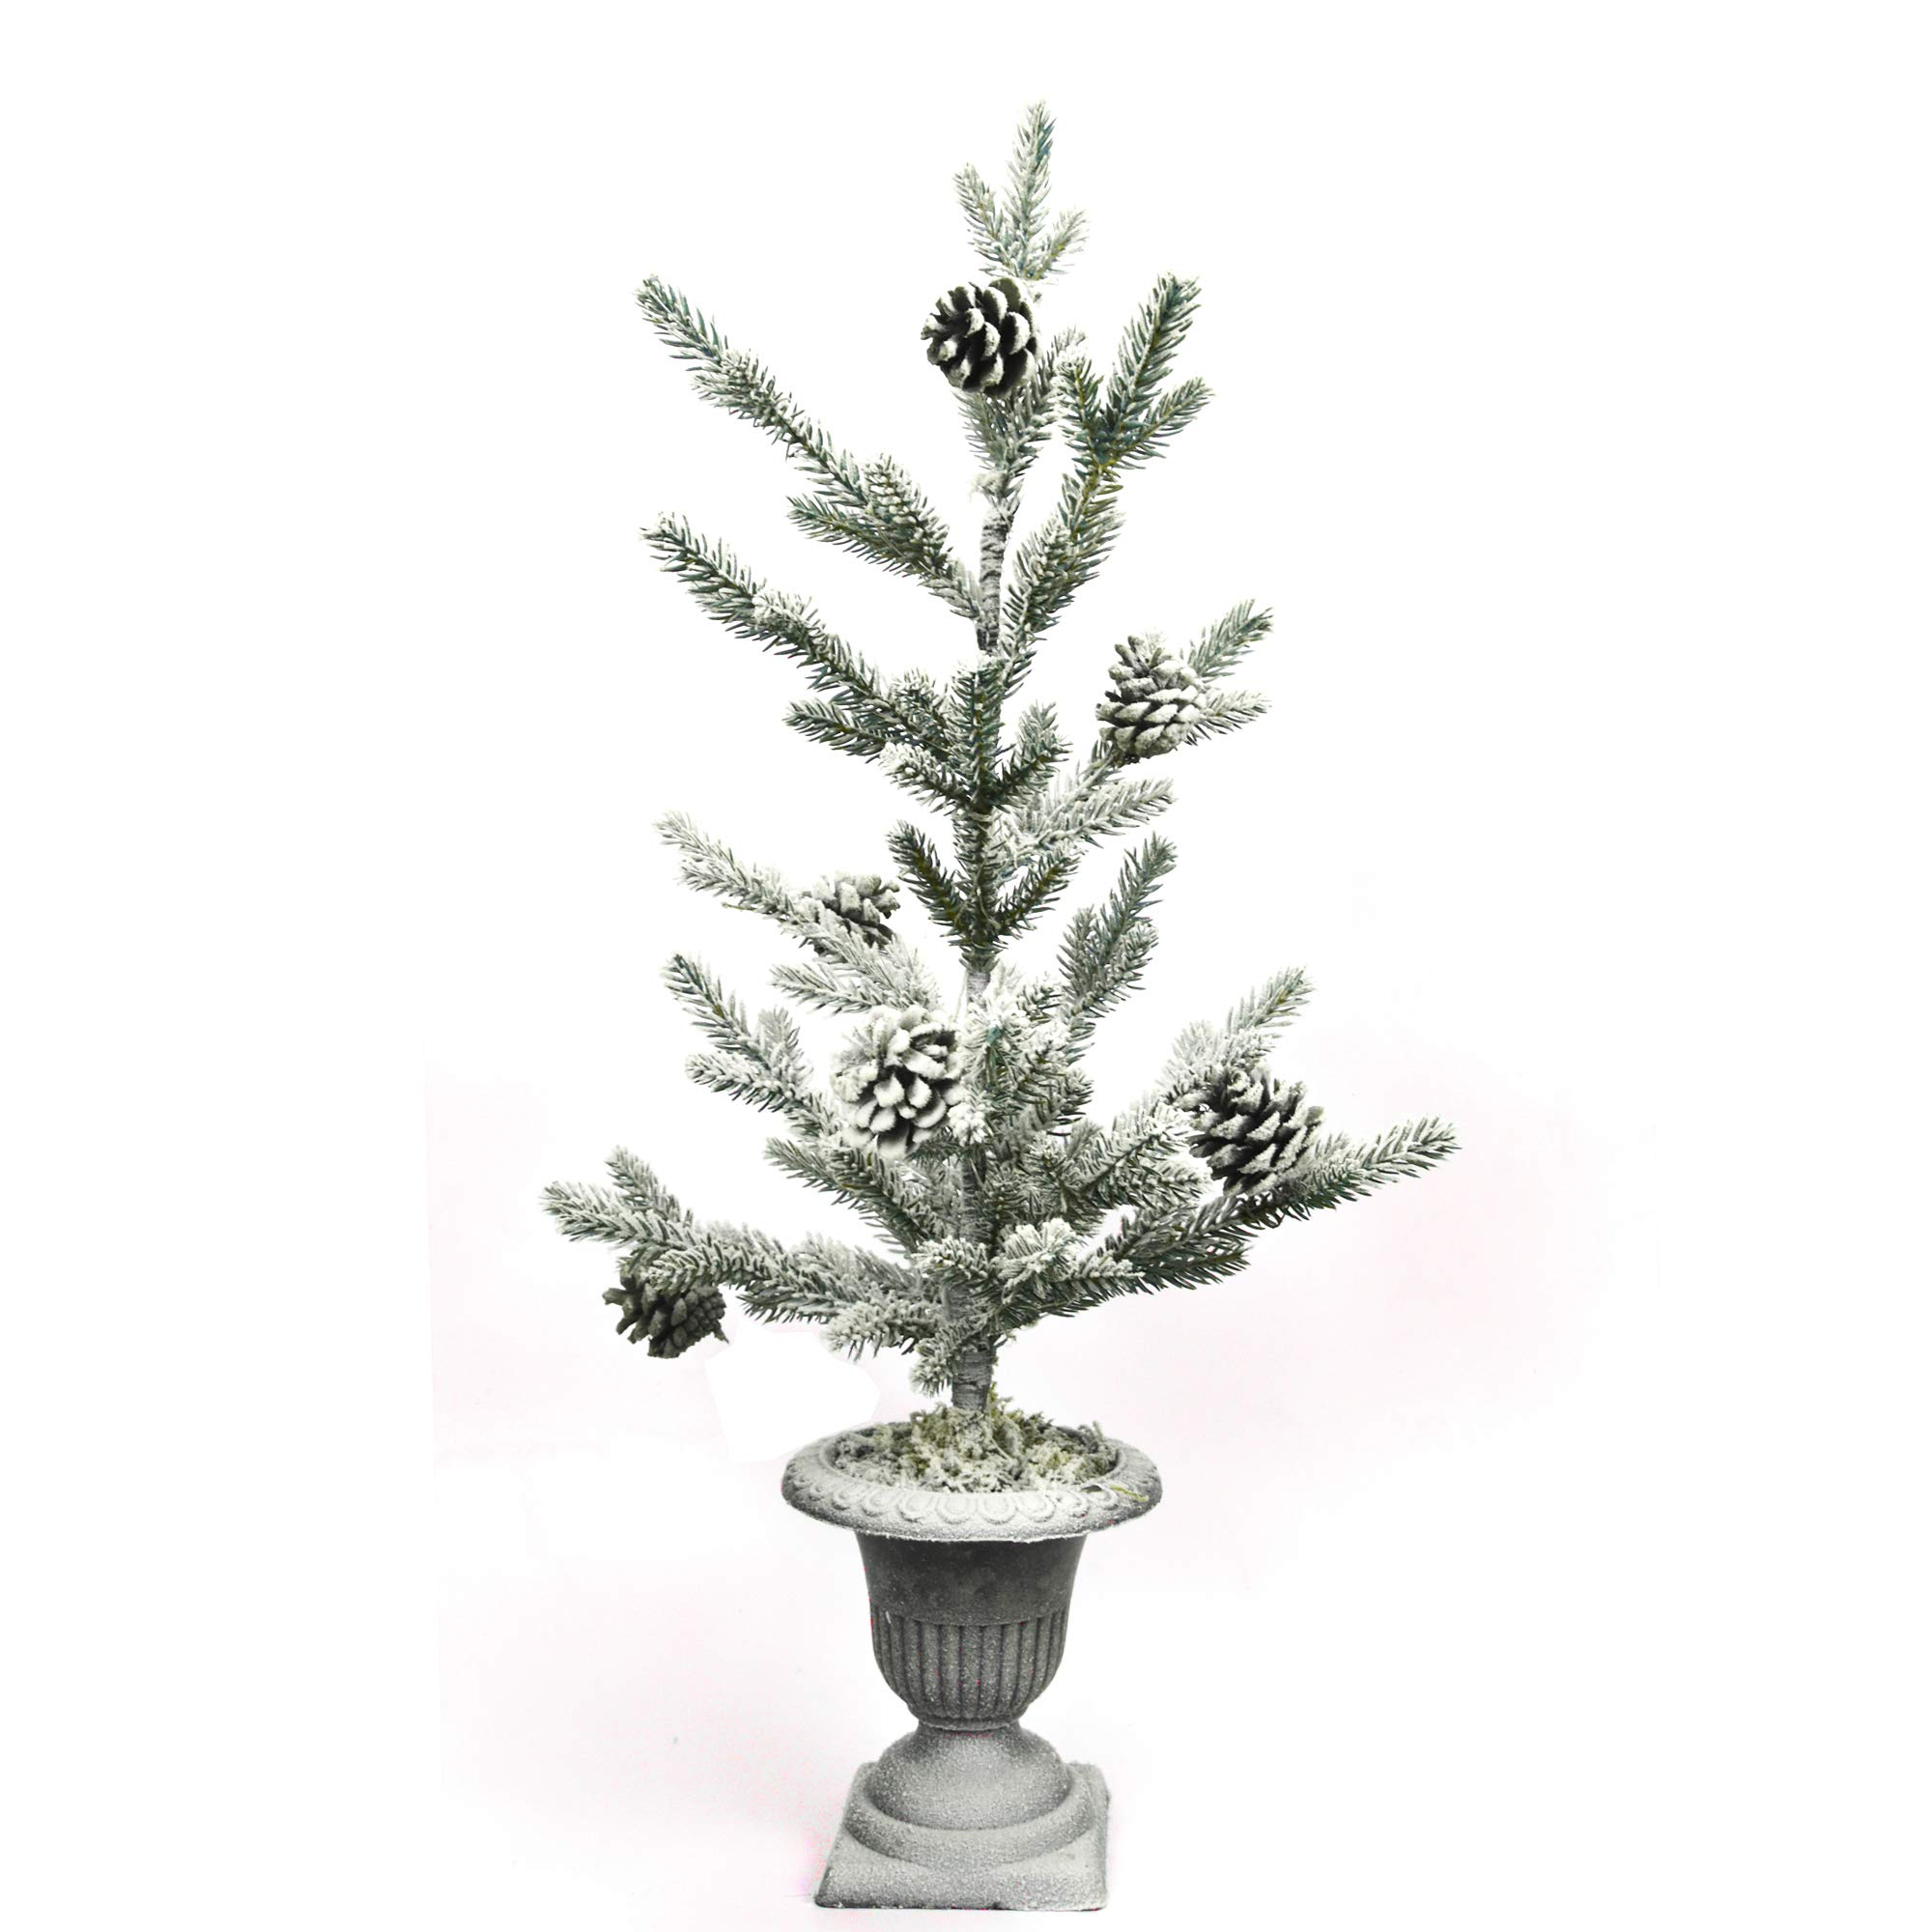 """X-nego 26"""" Frosted Alpine Balsam fir pre-lit Christmas Pine Tree Snowy Cones Battery Operated Warm White LED Lights Windowsills, Mantle Display Table Tops"""